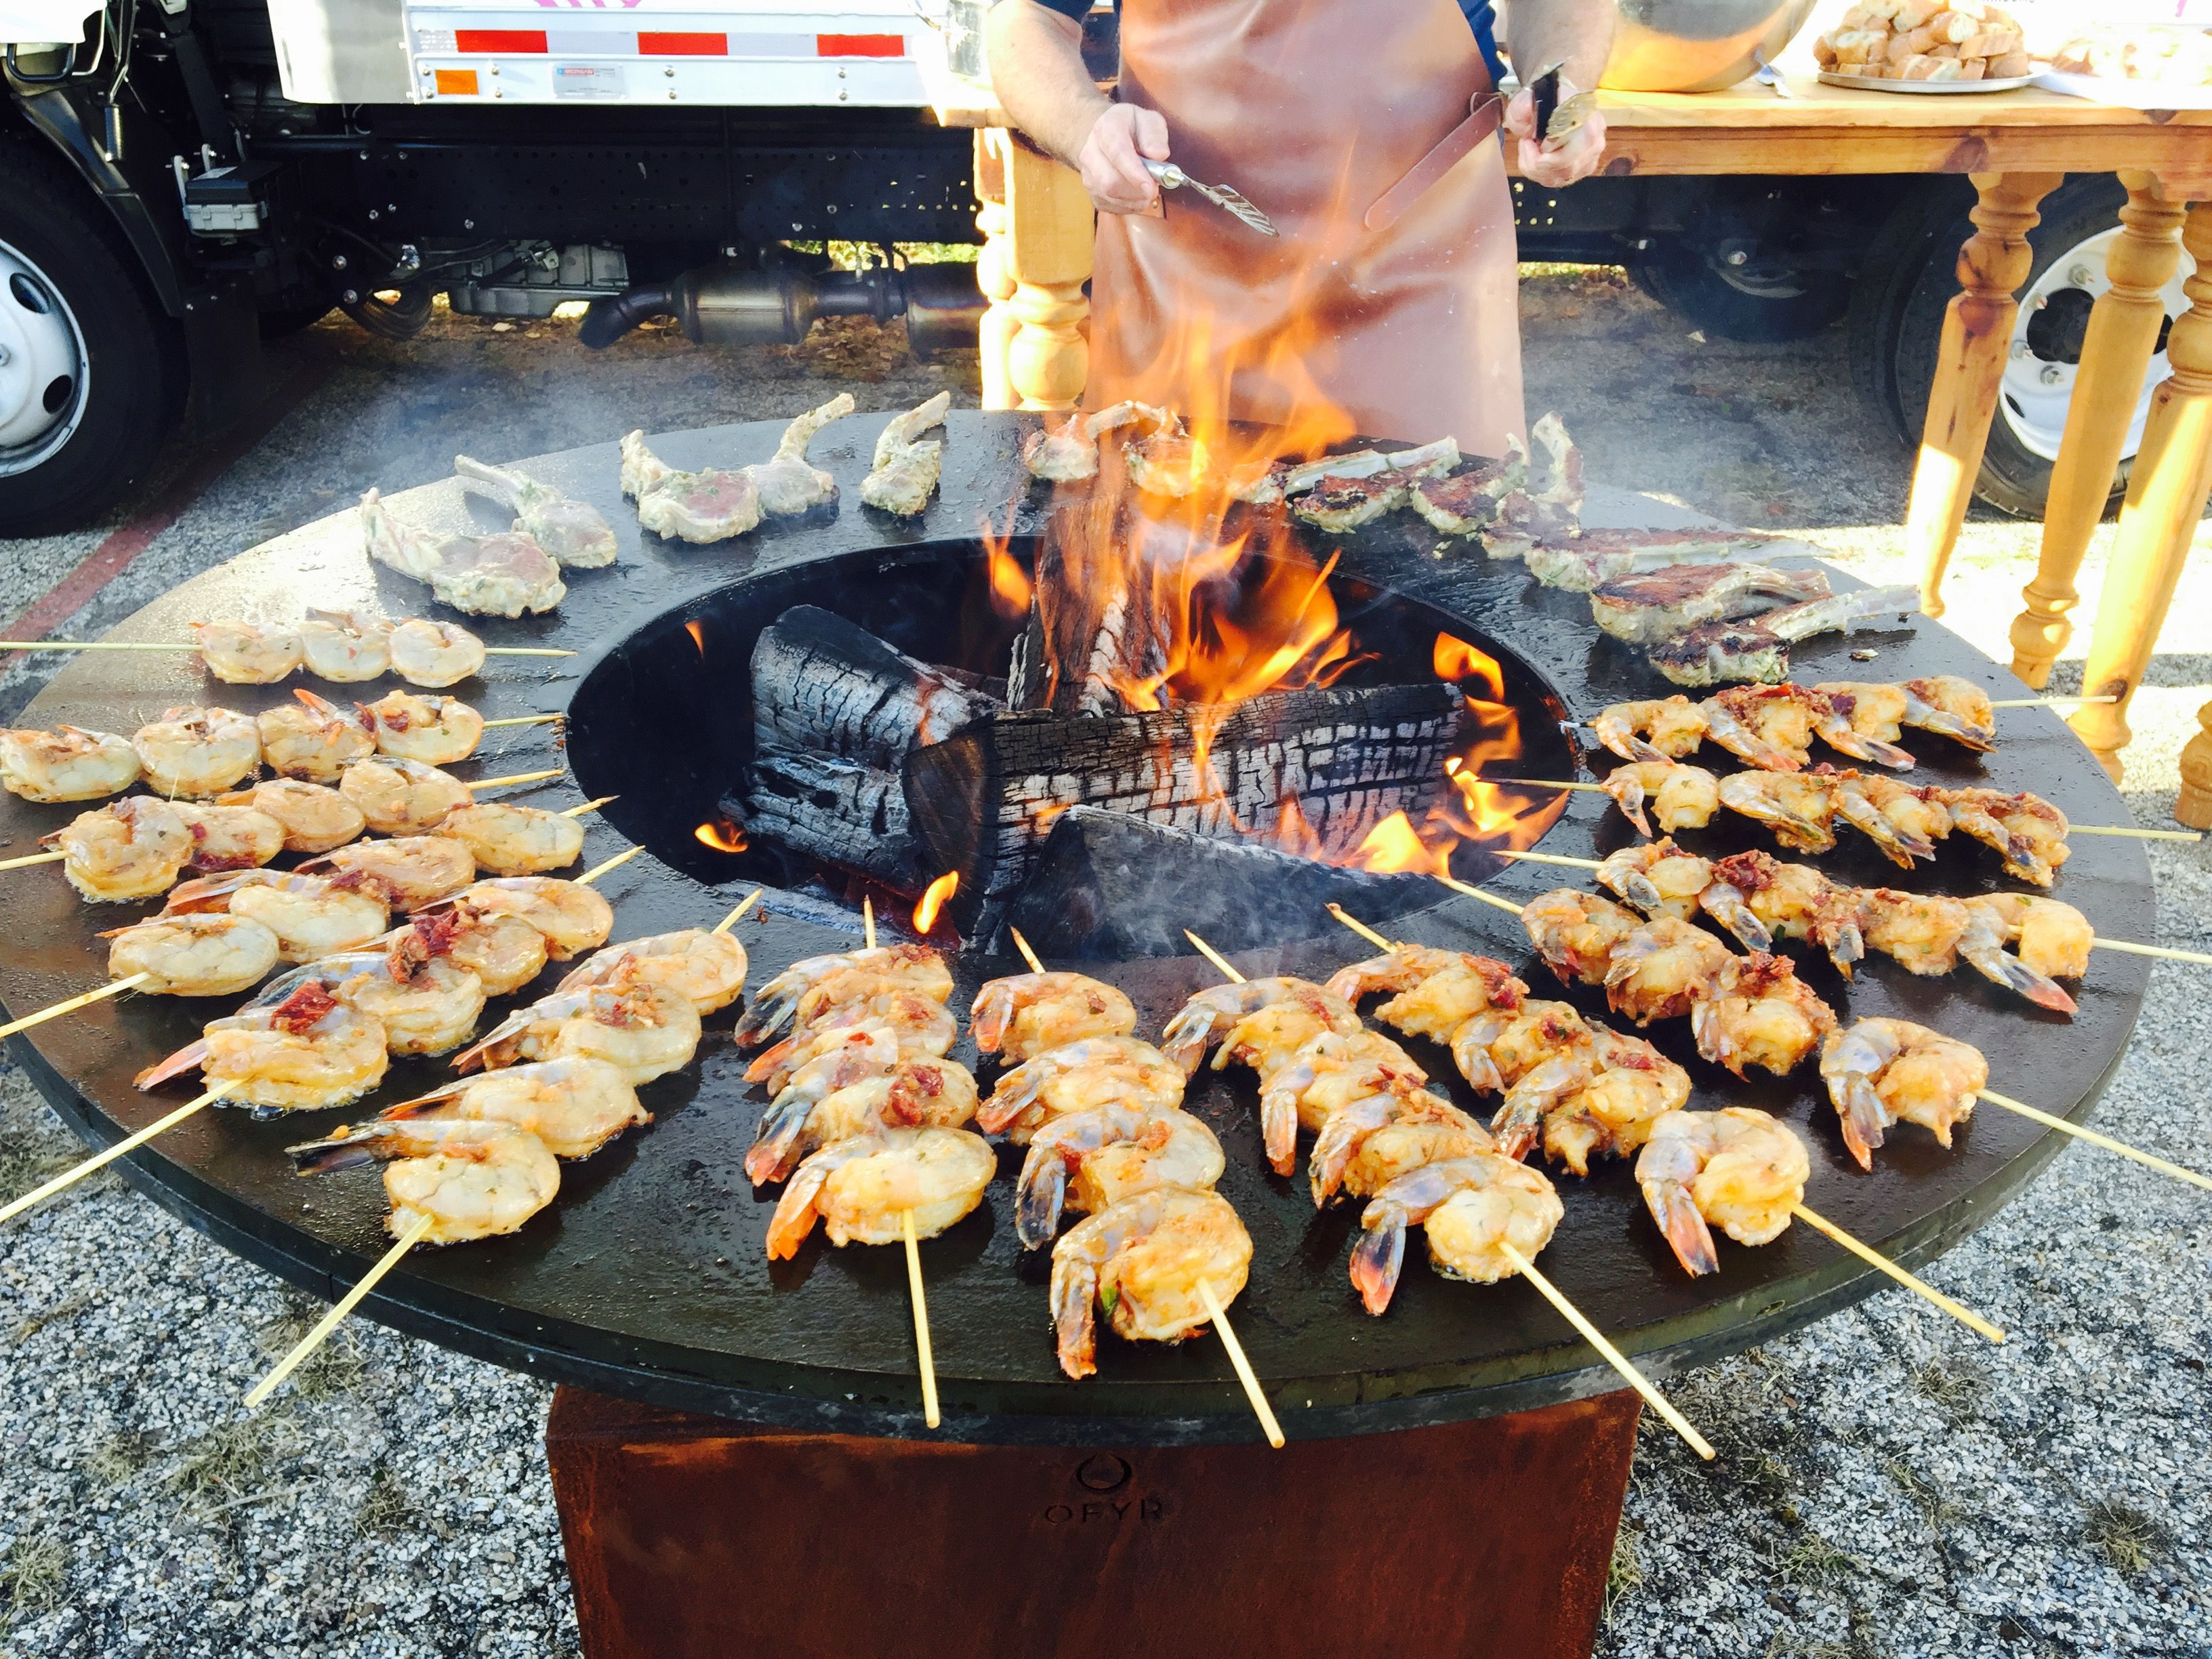 shrimp and lamb chops on the vision furniture ofyr grill from our